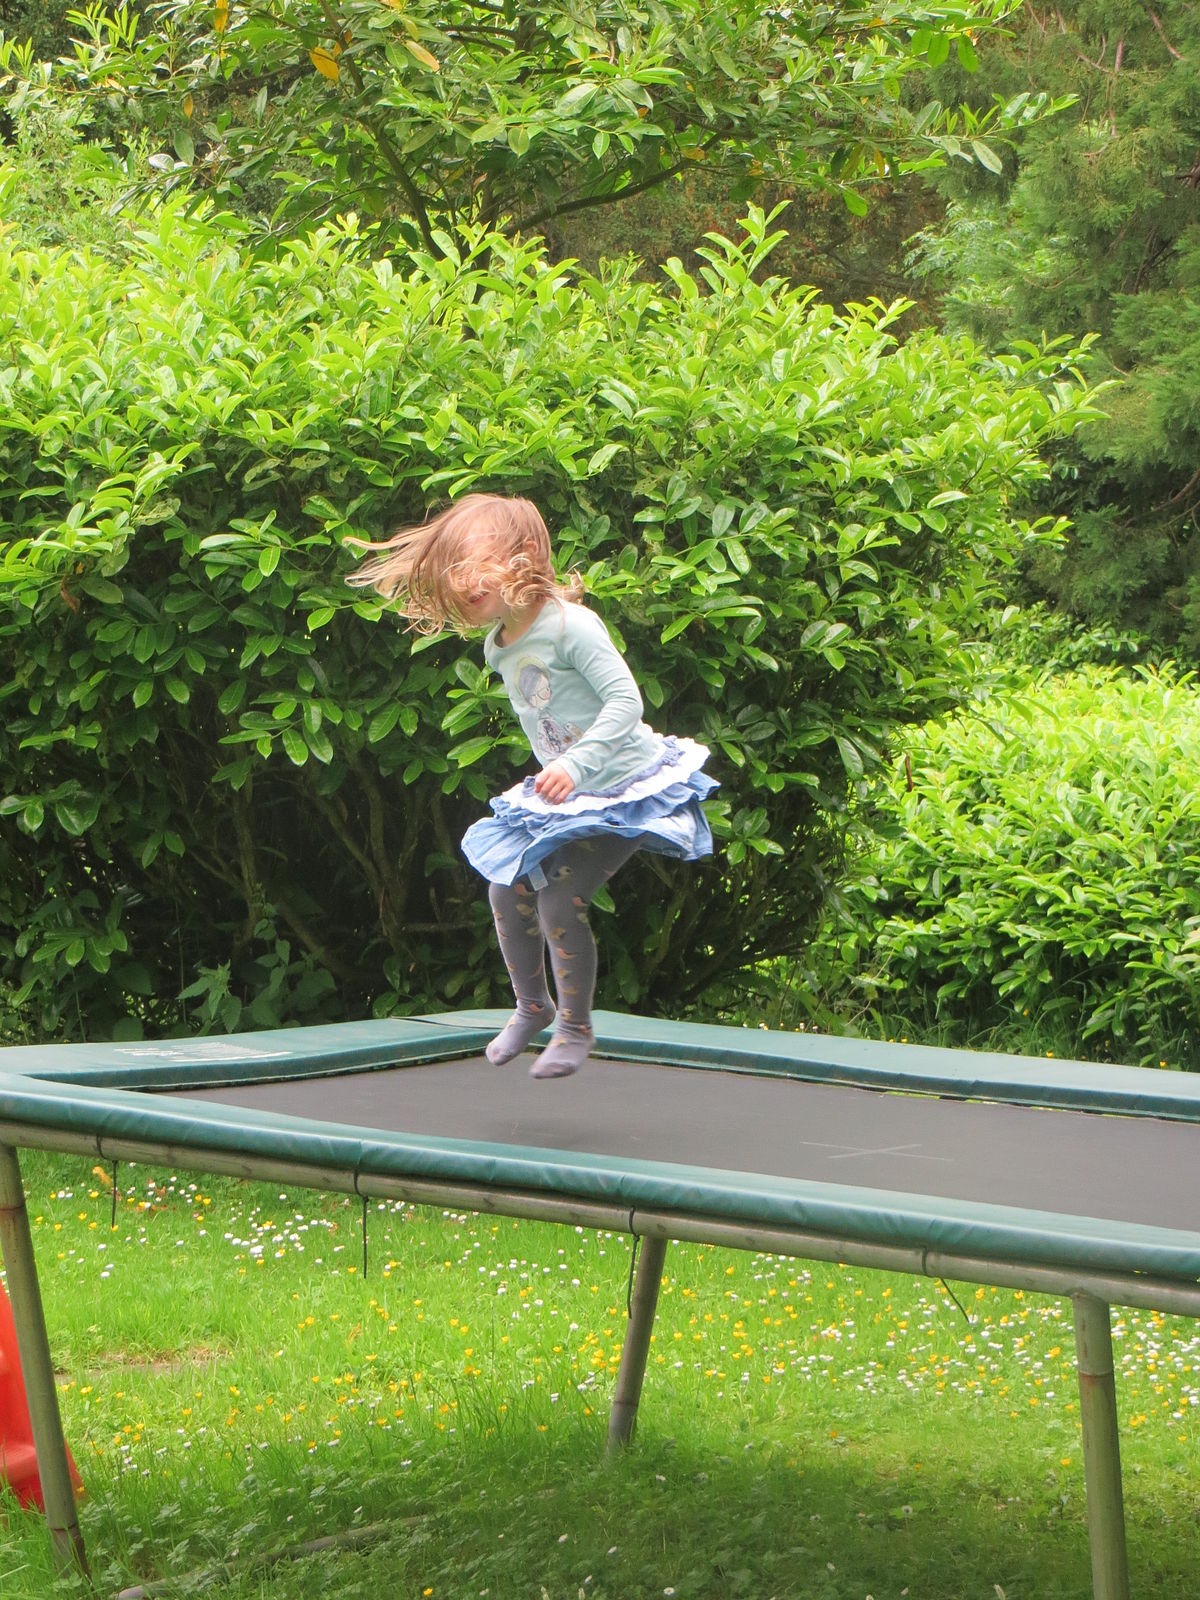 Is another family liable if your child was injured on their trampoline? Contact a NYC personal injury attorney for help.